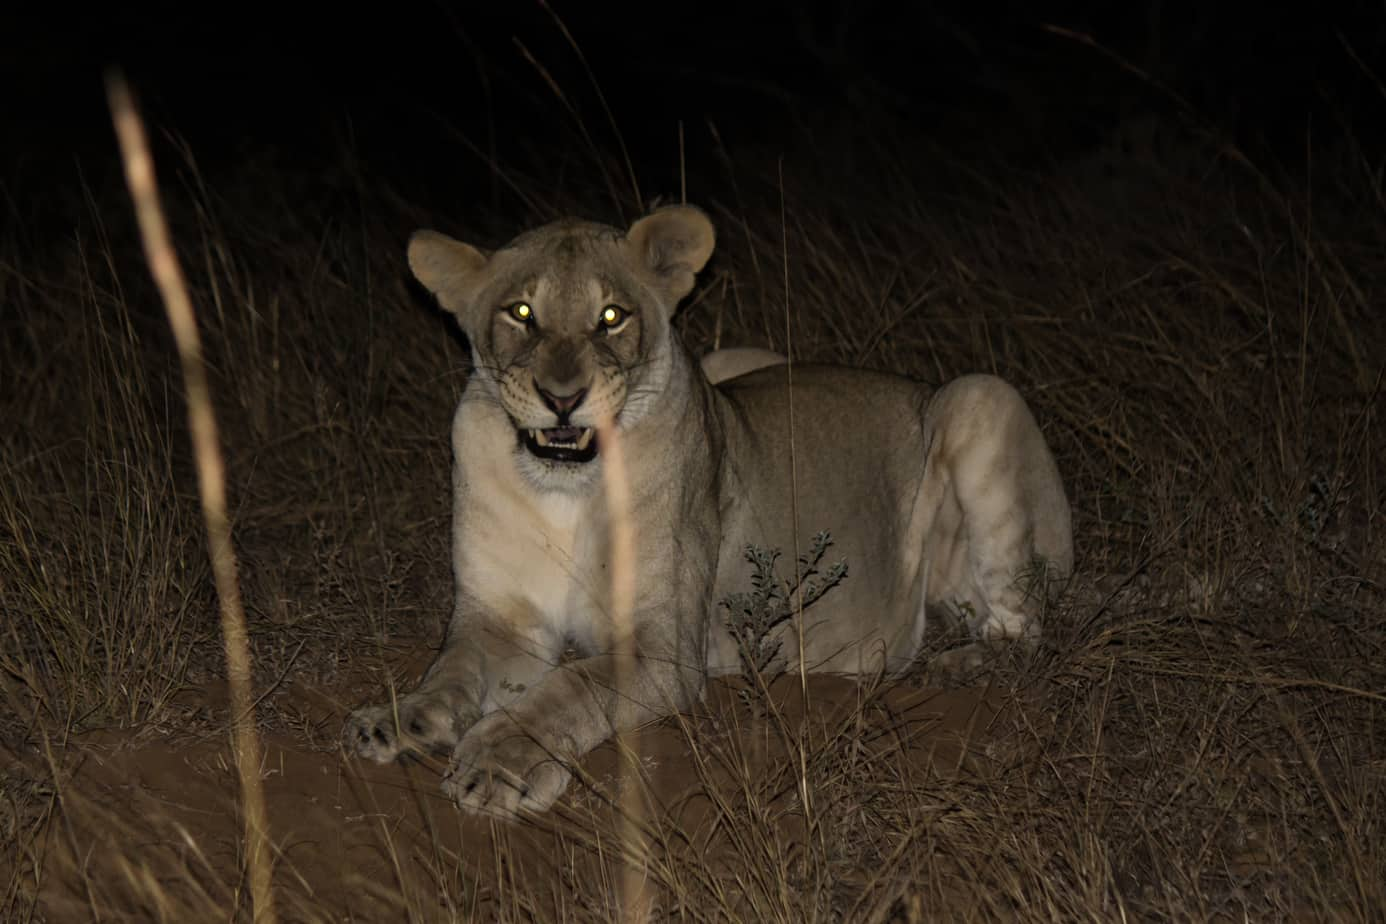 Lion at night @ Tembe Elephant Park. Photo: Håvard Rosenlund